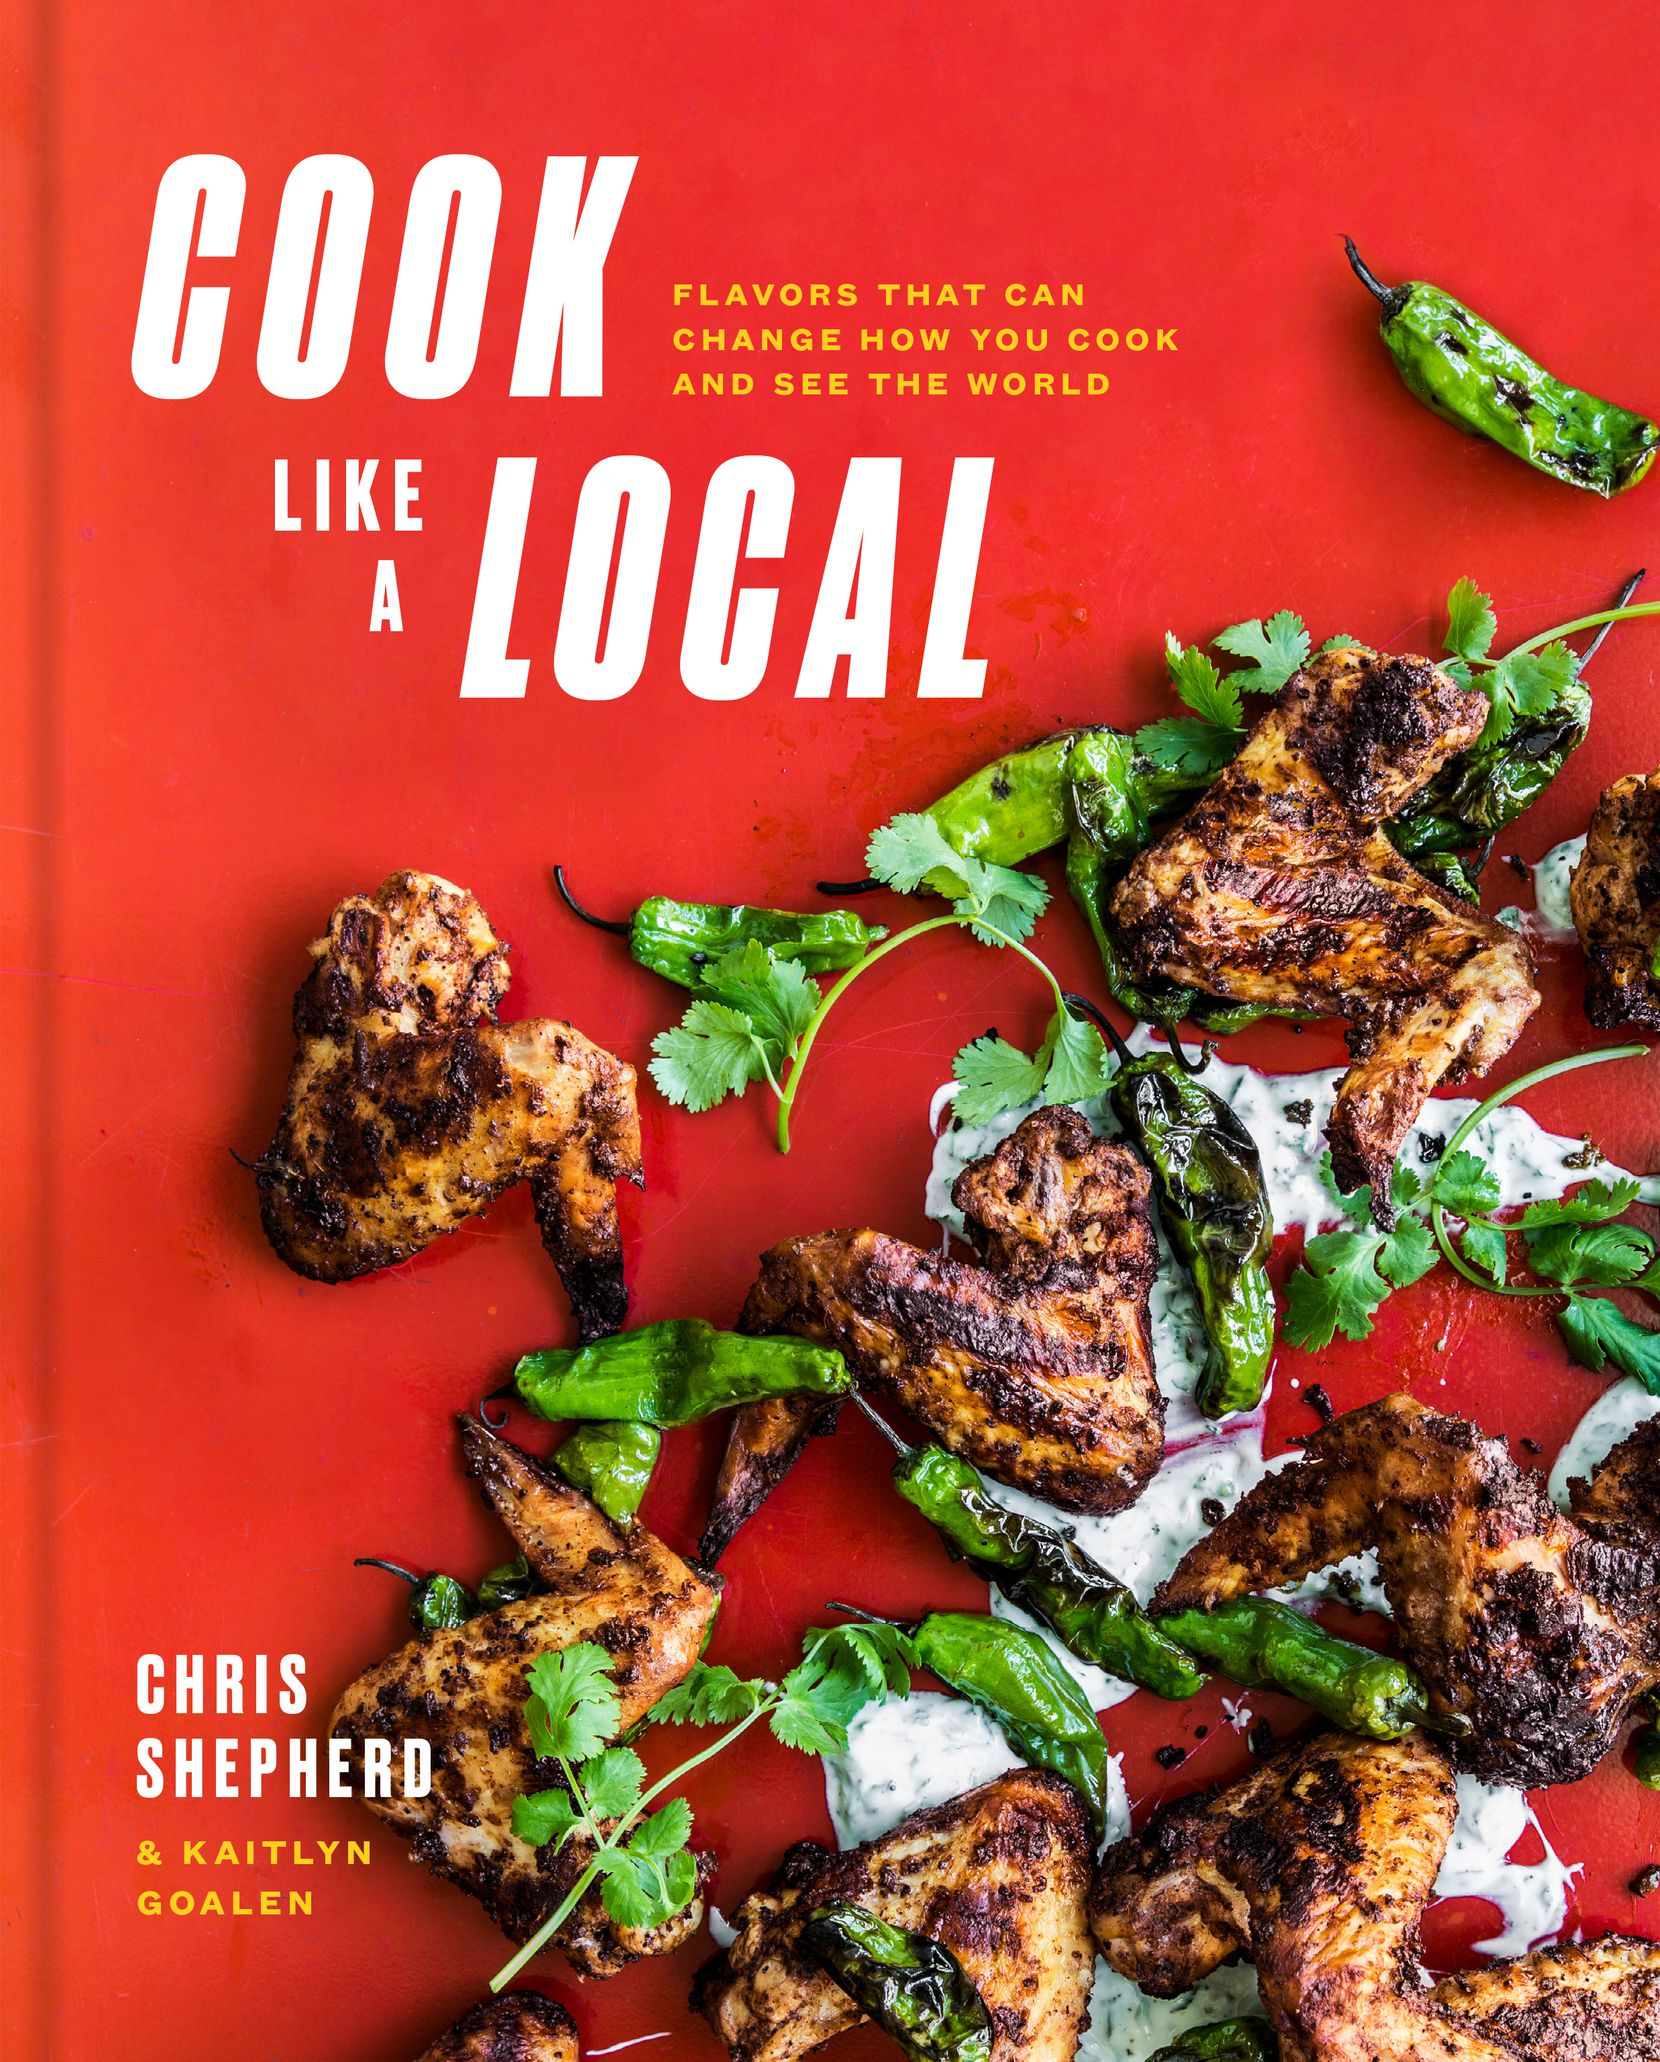 Houston chef Chris Shepherd's new cookbook, 'Cook Like a Local: Flavors That Can Change How You Cook and See the World,' co-written with Kaitlyn Goalen (Clarkson Potter, $35)